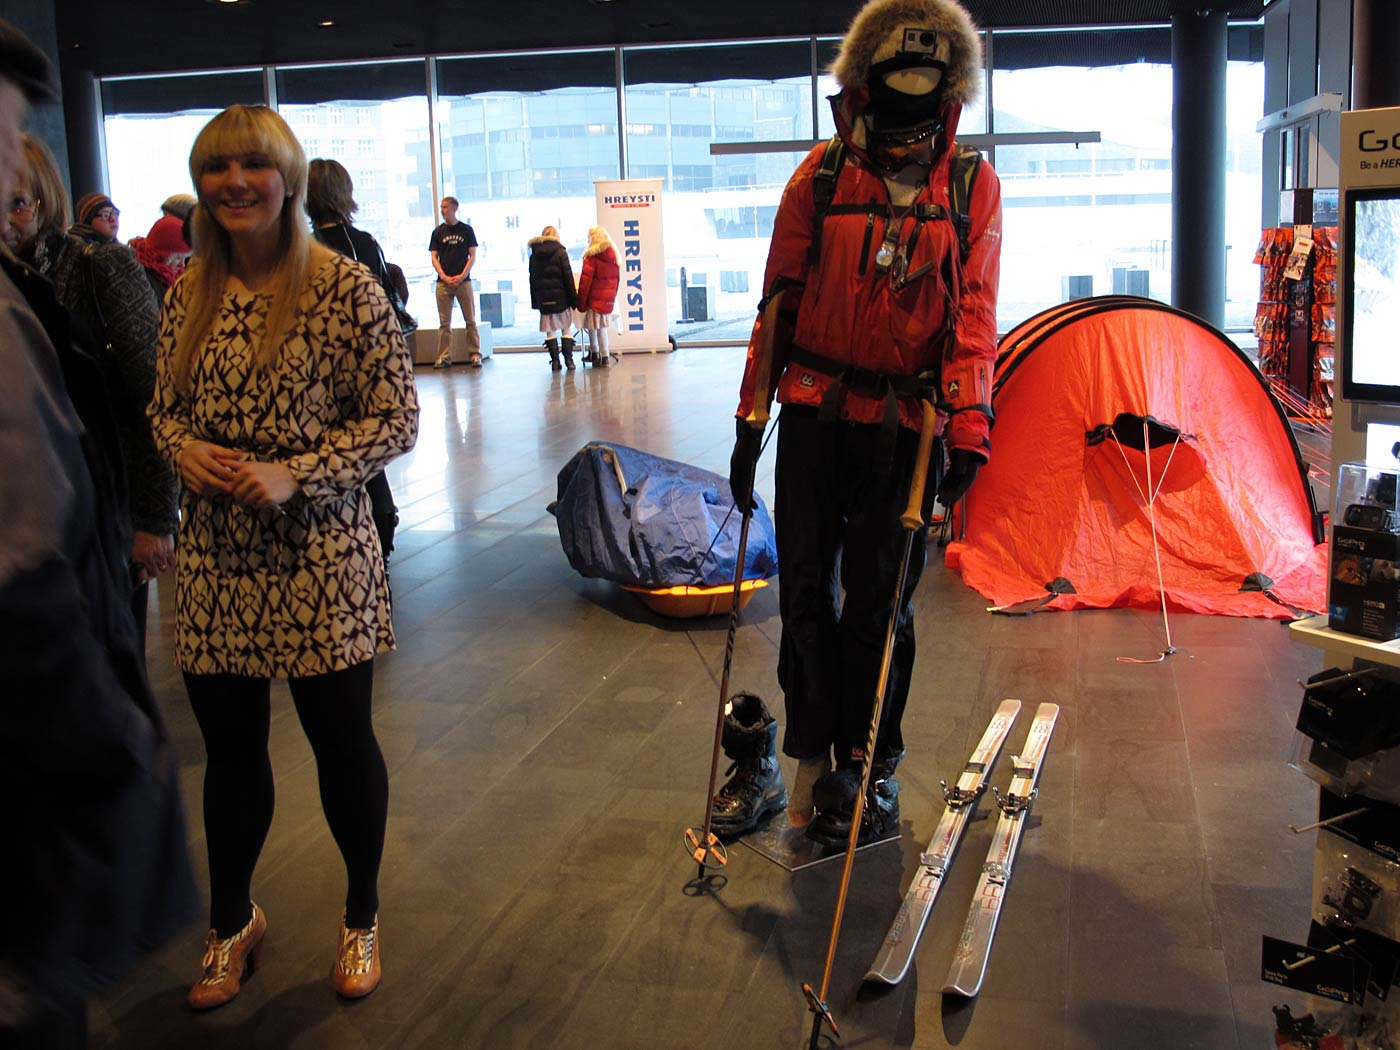 Reykjav&iacute;k. Vilborg A. Gissurard&oacute;ttir, from the south pole to HARPA. - Vilborg A. Gissurard&oacute;ttir (left) was hiking during 60 days from the coast of Antarctica to the south pole. Today she was showing her equipment in HAPRA. More on <a href='http://www.icenews.is/2013/01/21/south-pole-journey-completed-by-icelander-vilborg-arna-gissurardottir/' target='_blank' class='linksnormal'>IceNews</a>. (3 February 2013)